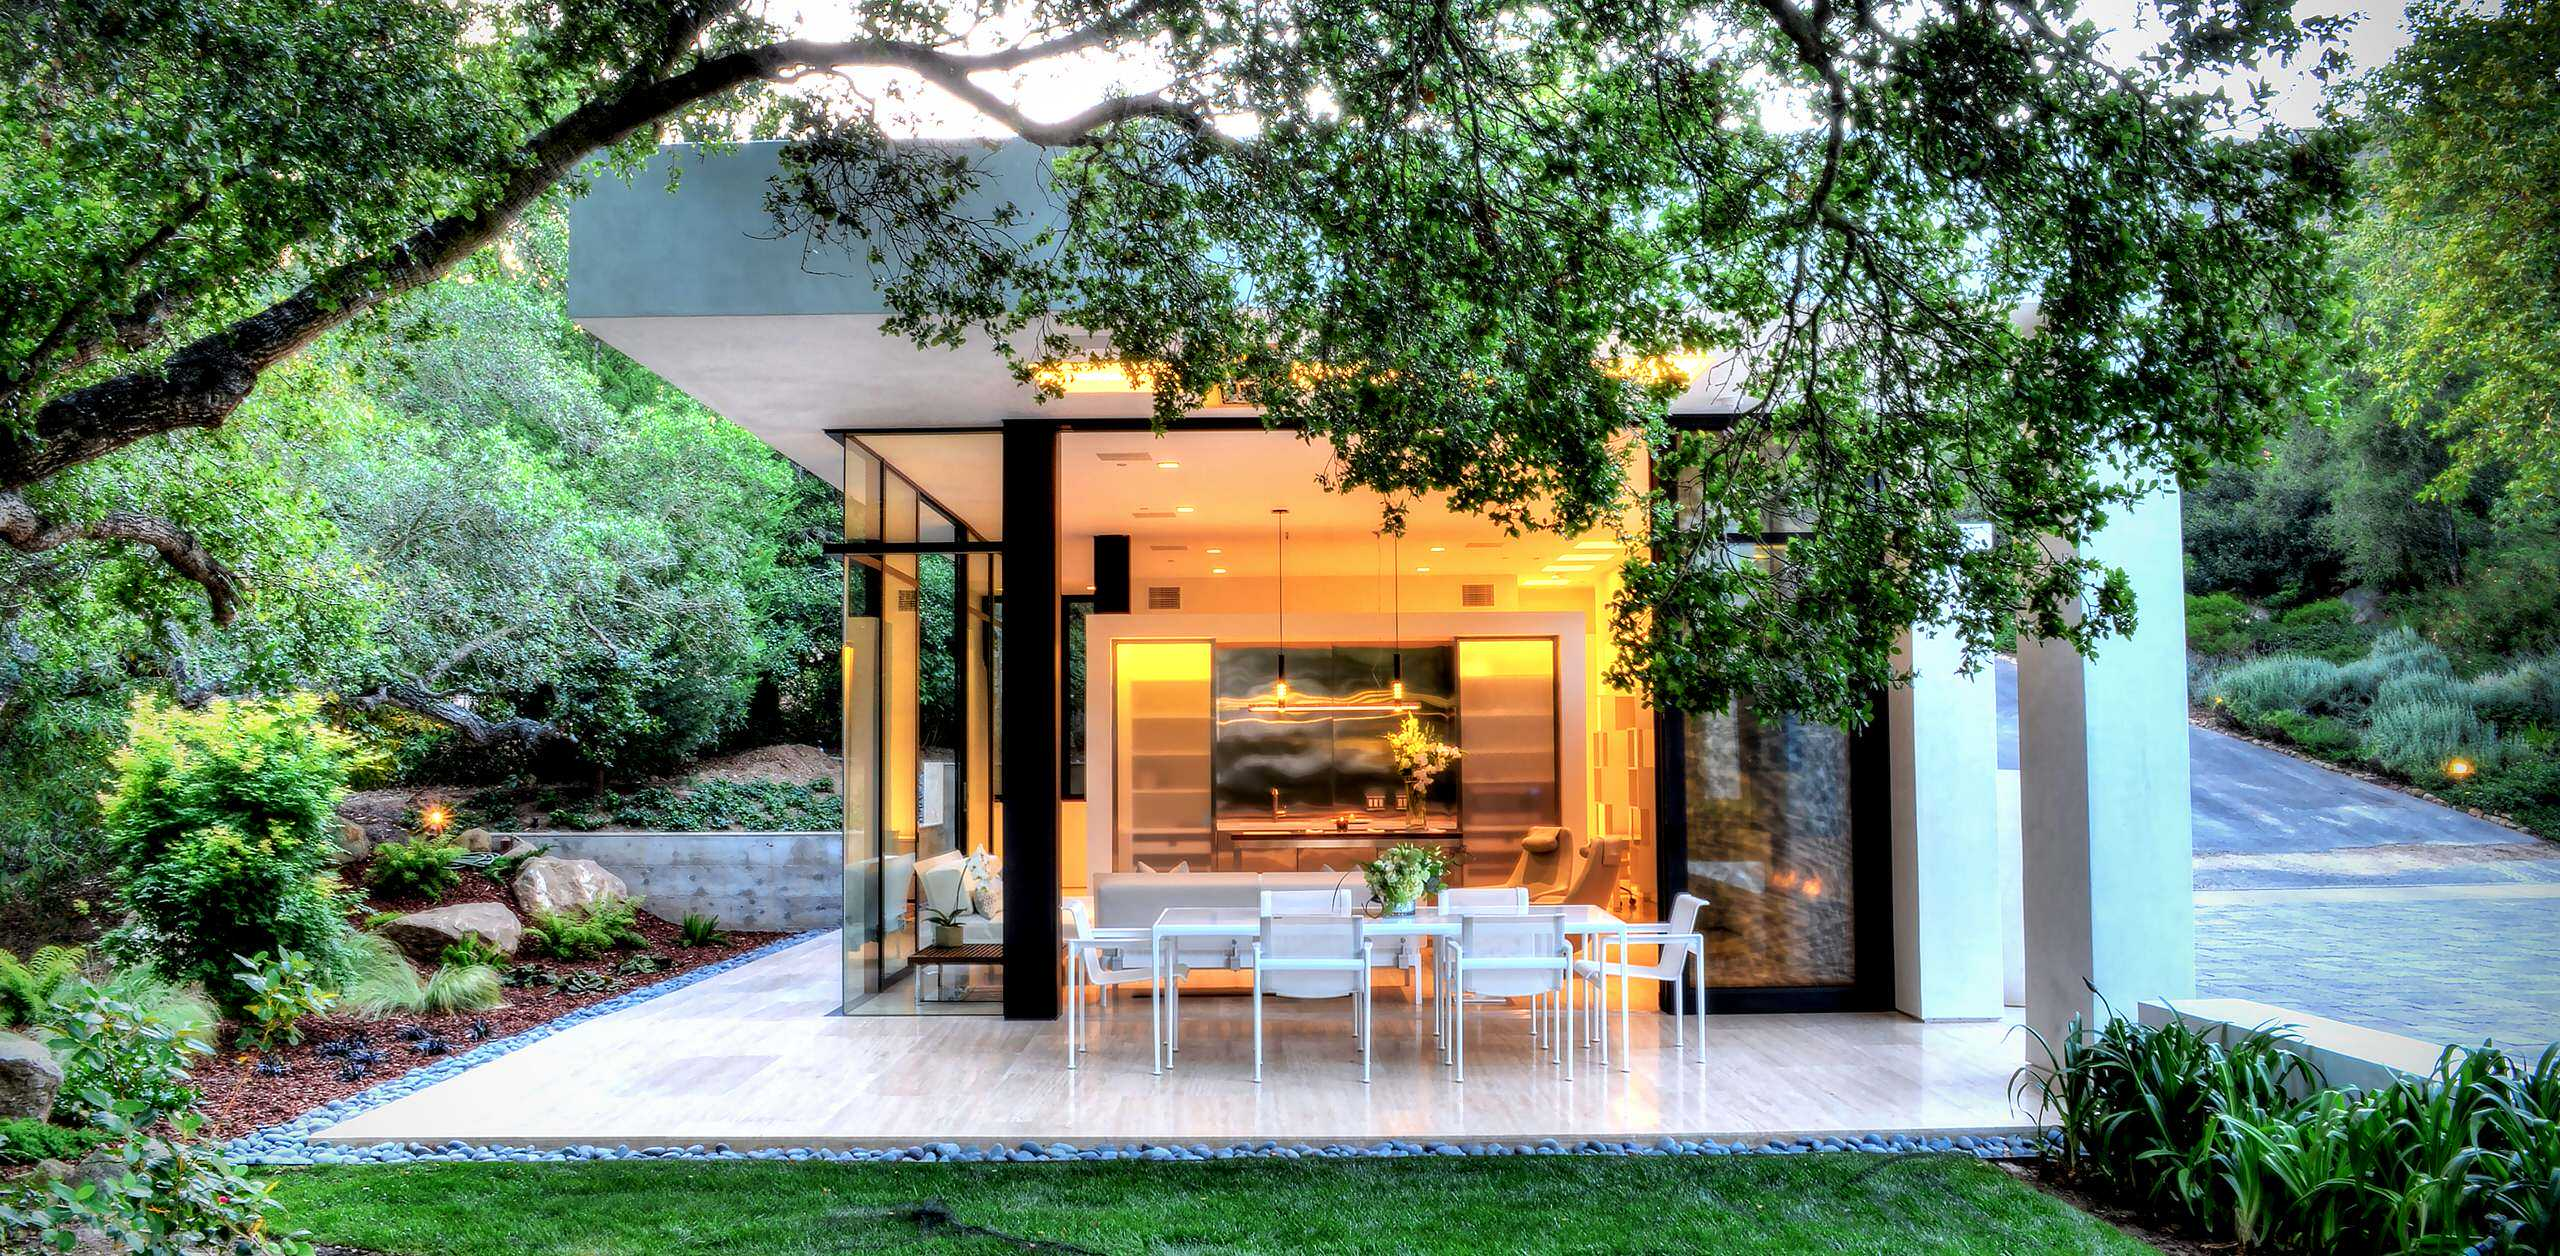 18 spectacular modern patio designs to enjoy the outdoors for Backyard patio design ideas